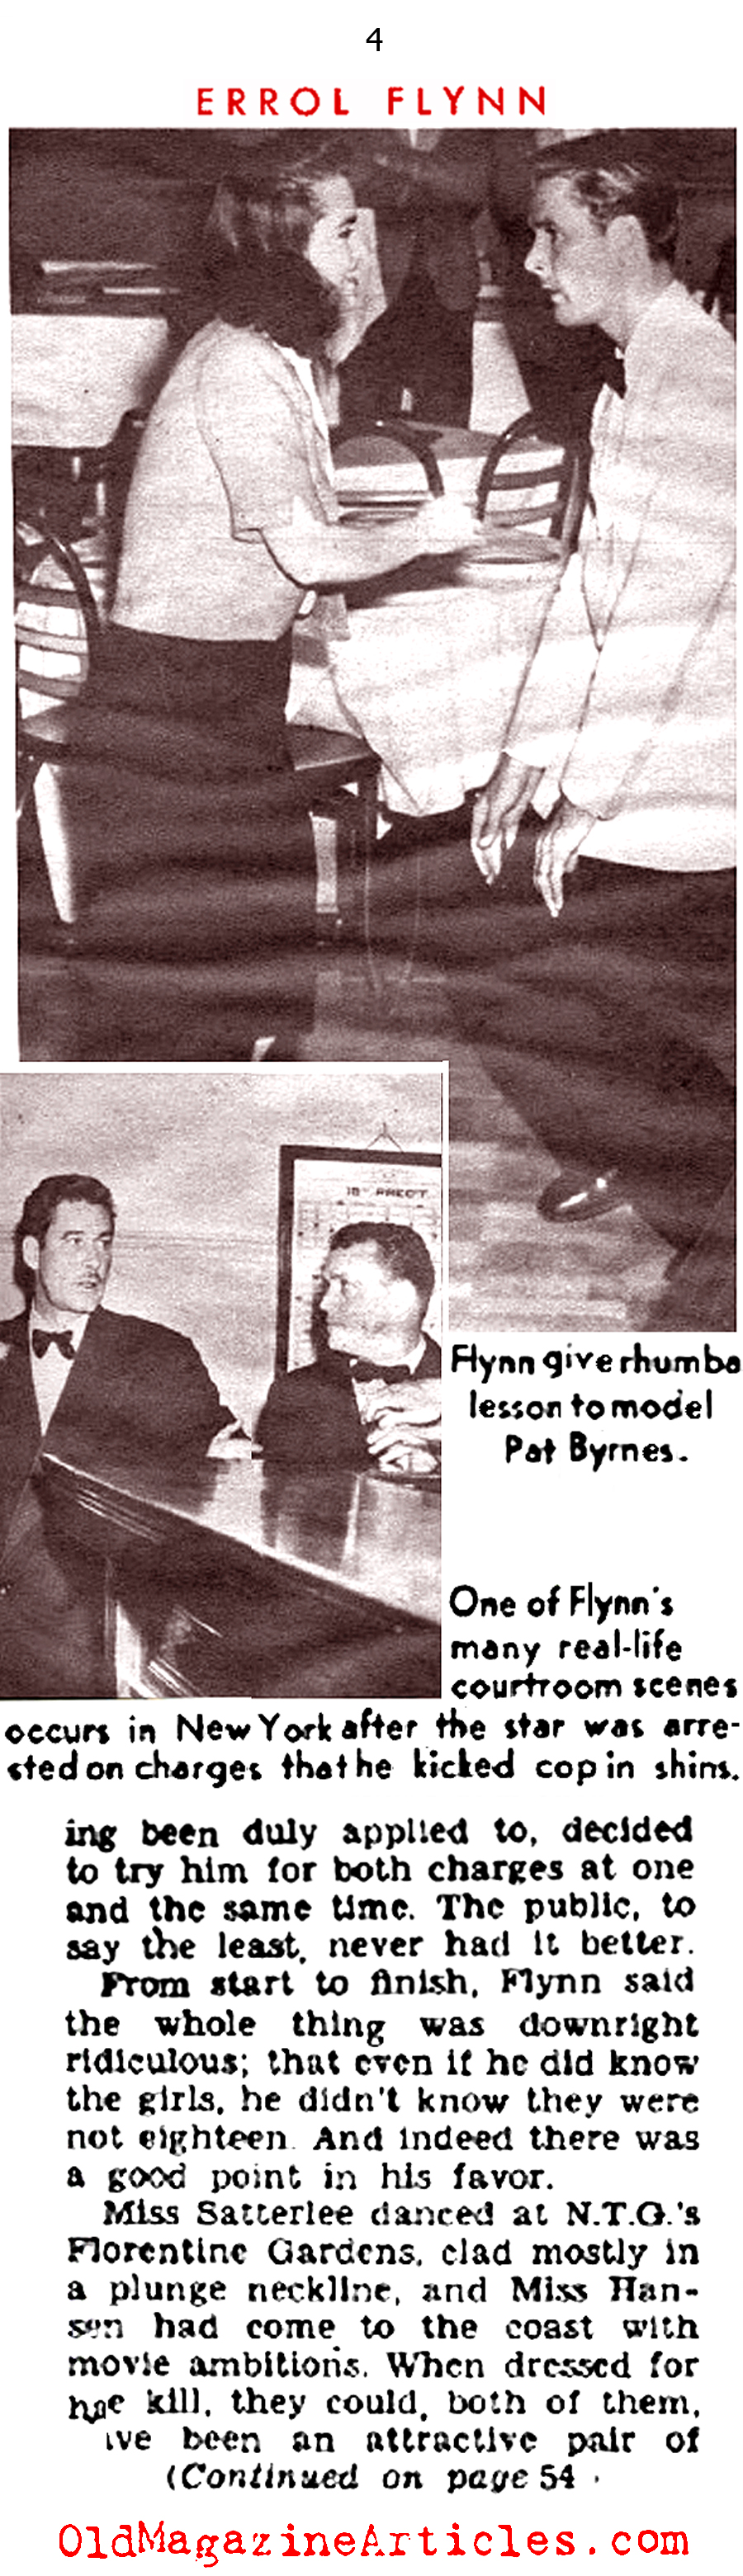 Bad-Boy Errol Flynn (Sir! Magazine, 1954)